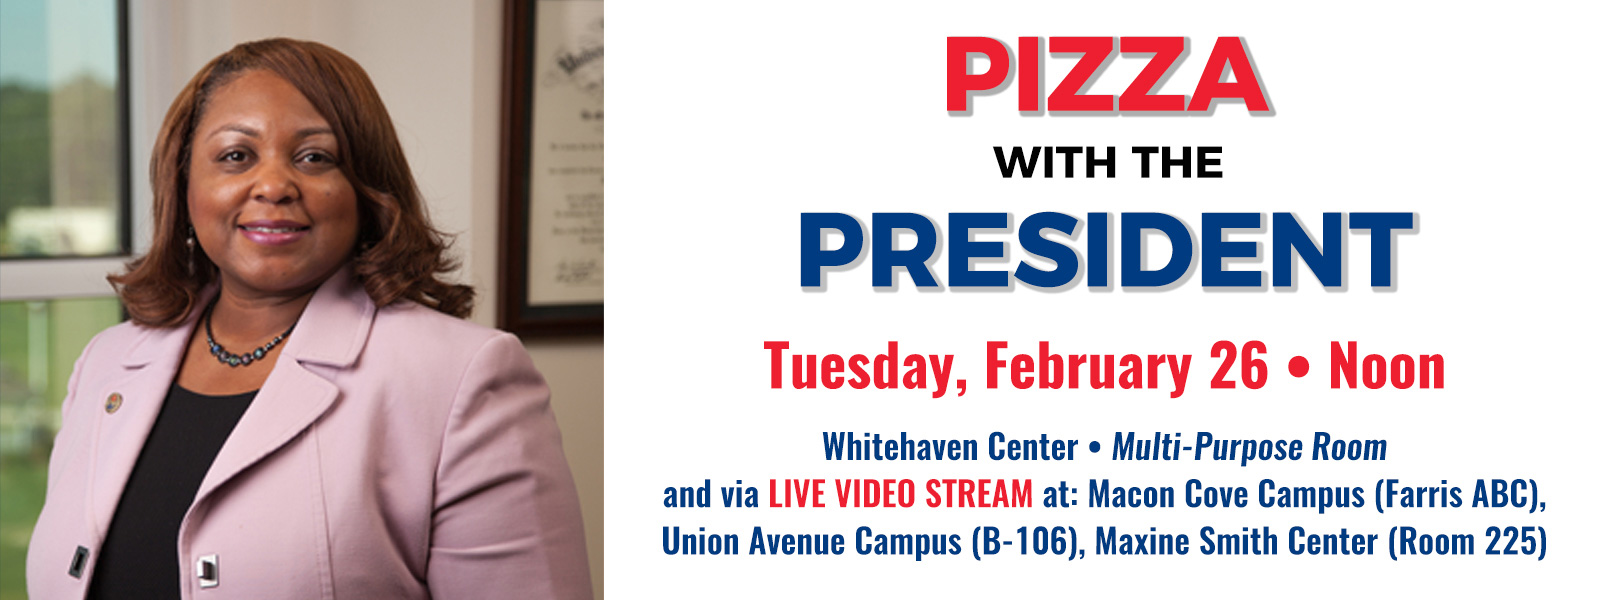 Pizza with the President